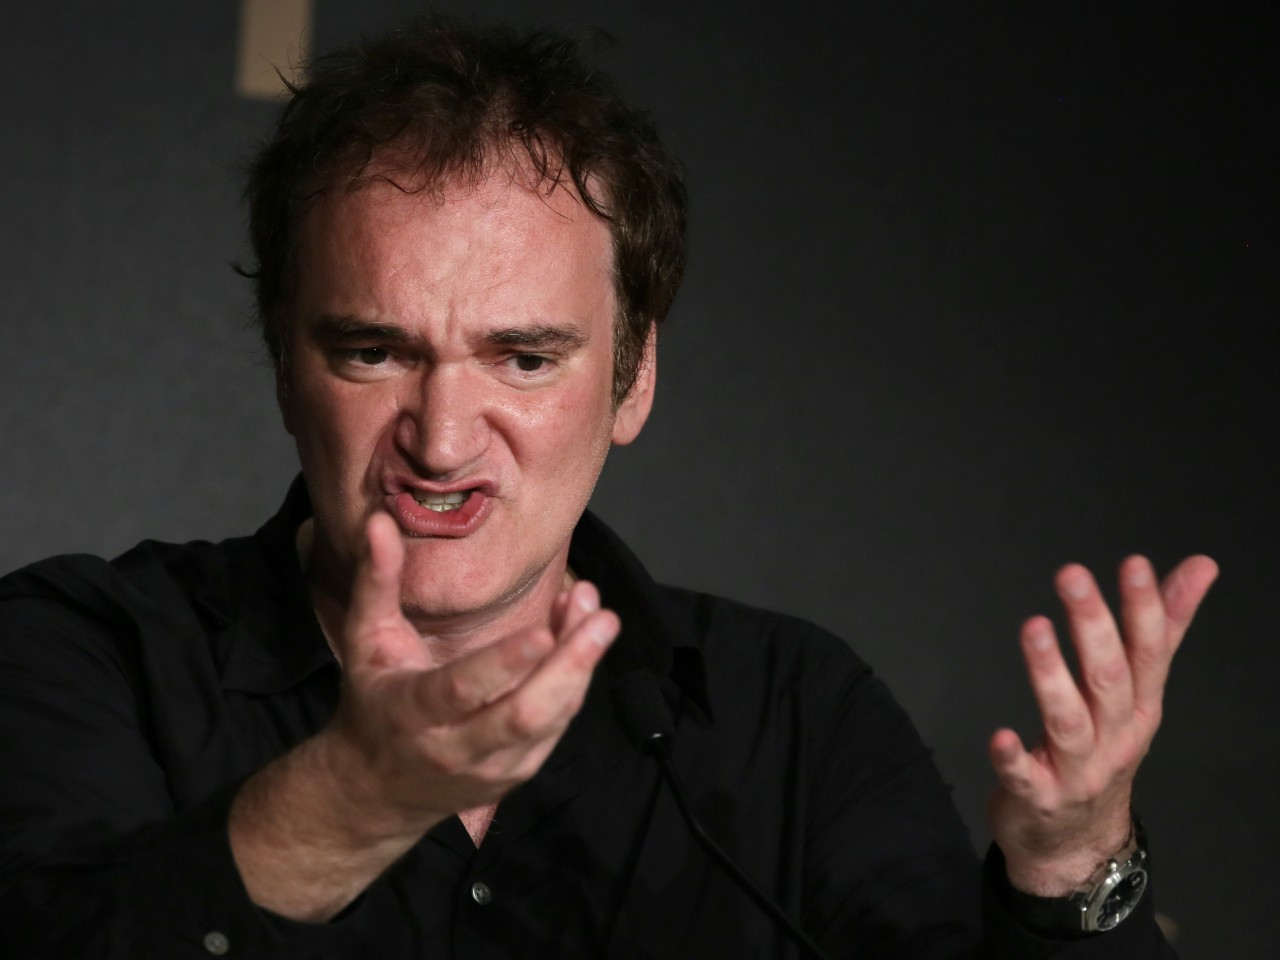 https://media.salon.com/2014/05/france-cannes-quentin-tarantino-press-conference.jpeg1-1280x960.jpg